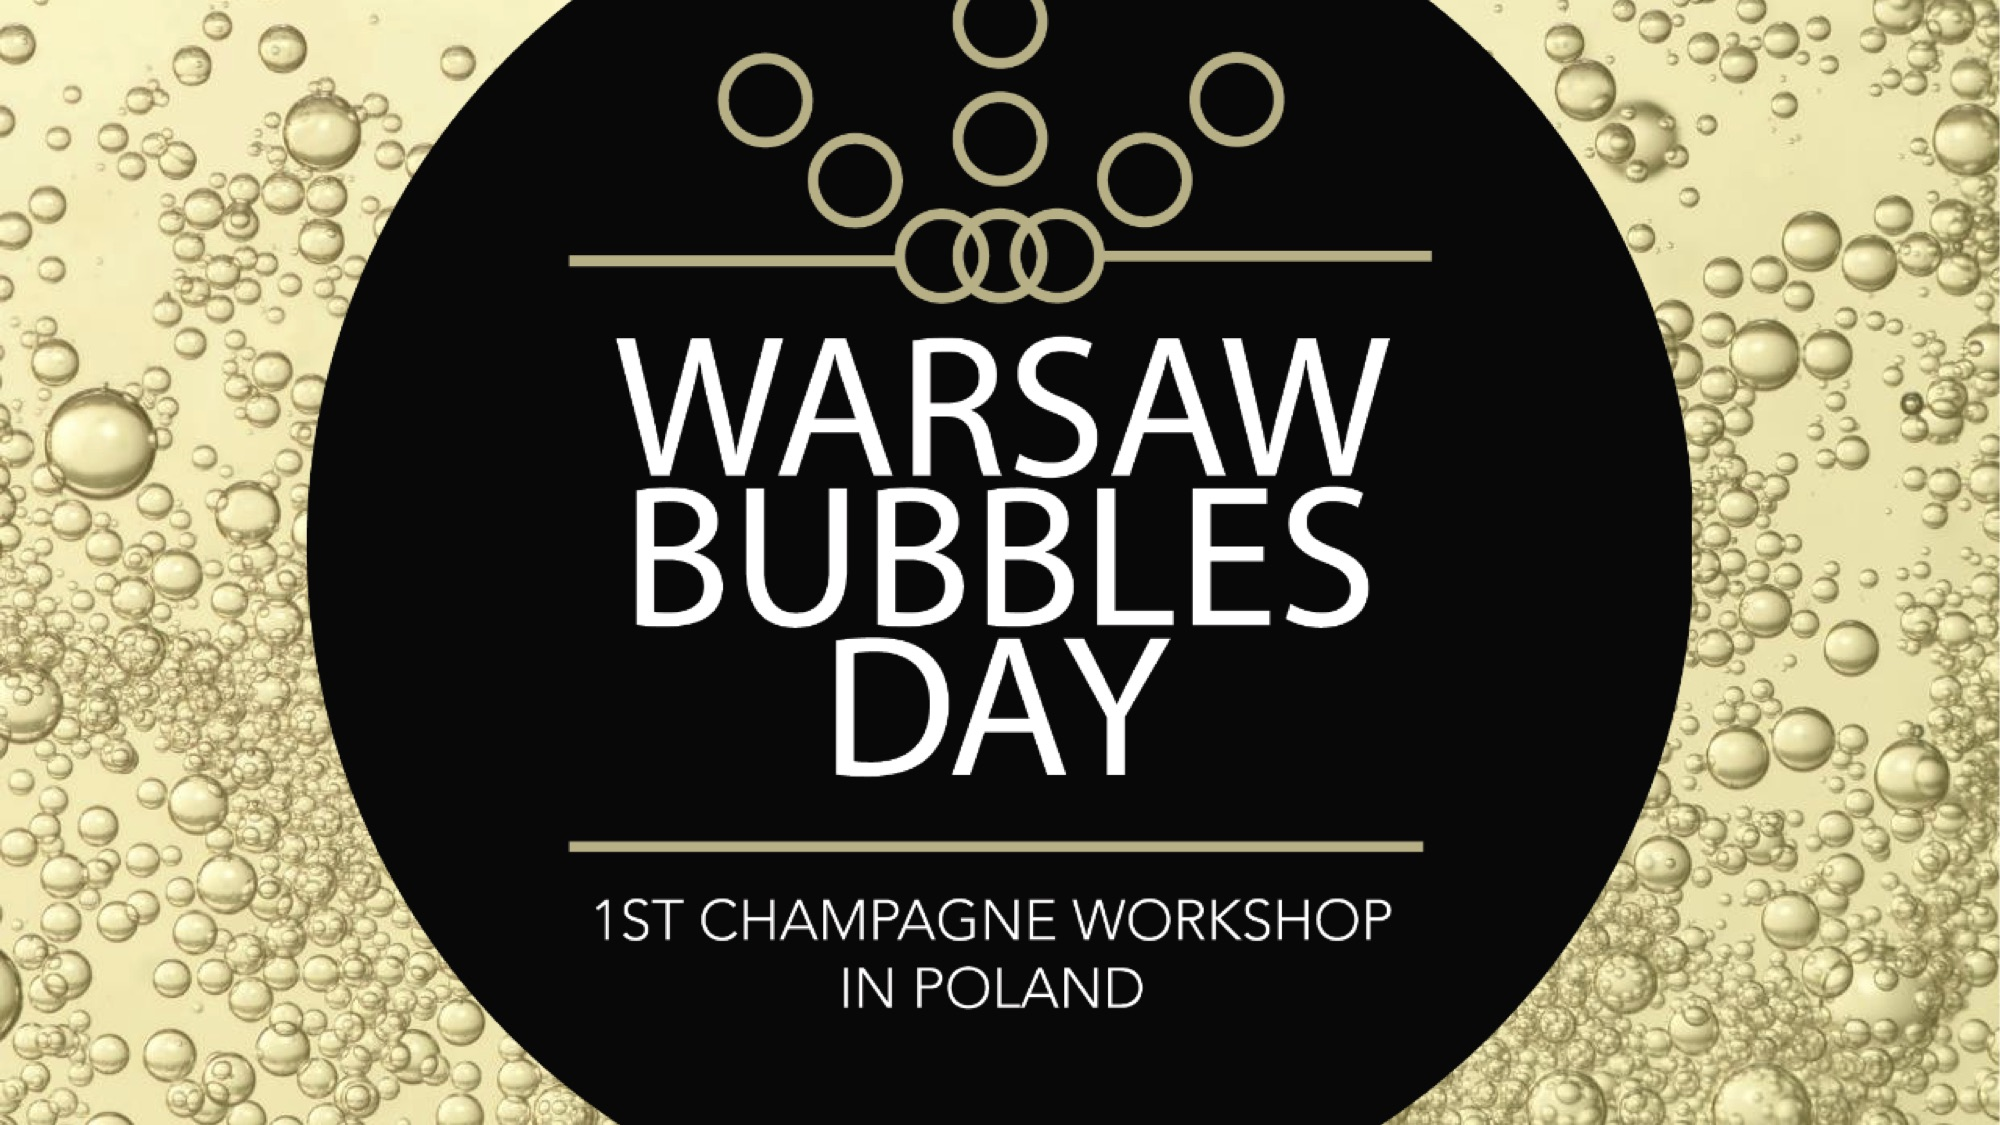 Warsaw Bubbles Day 1th workshop in Poland